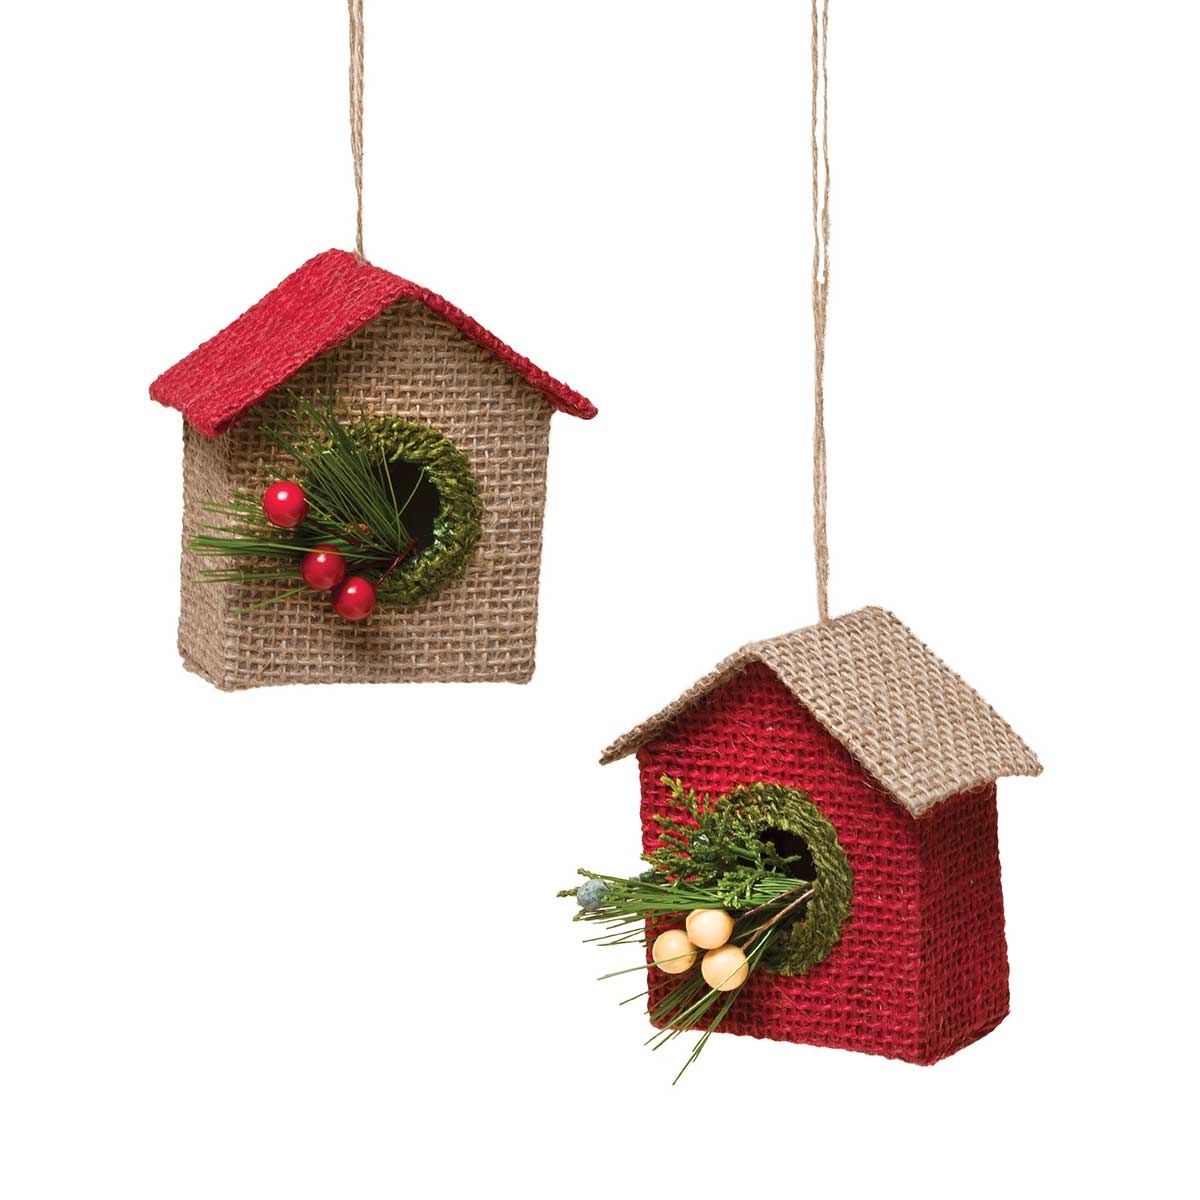 Burlap bird ornaments - R5737 Homespun Burlap Bird House Ornament 2 Assorted 4